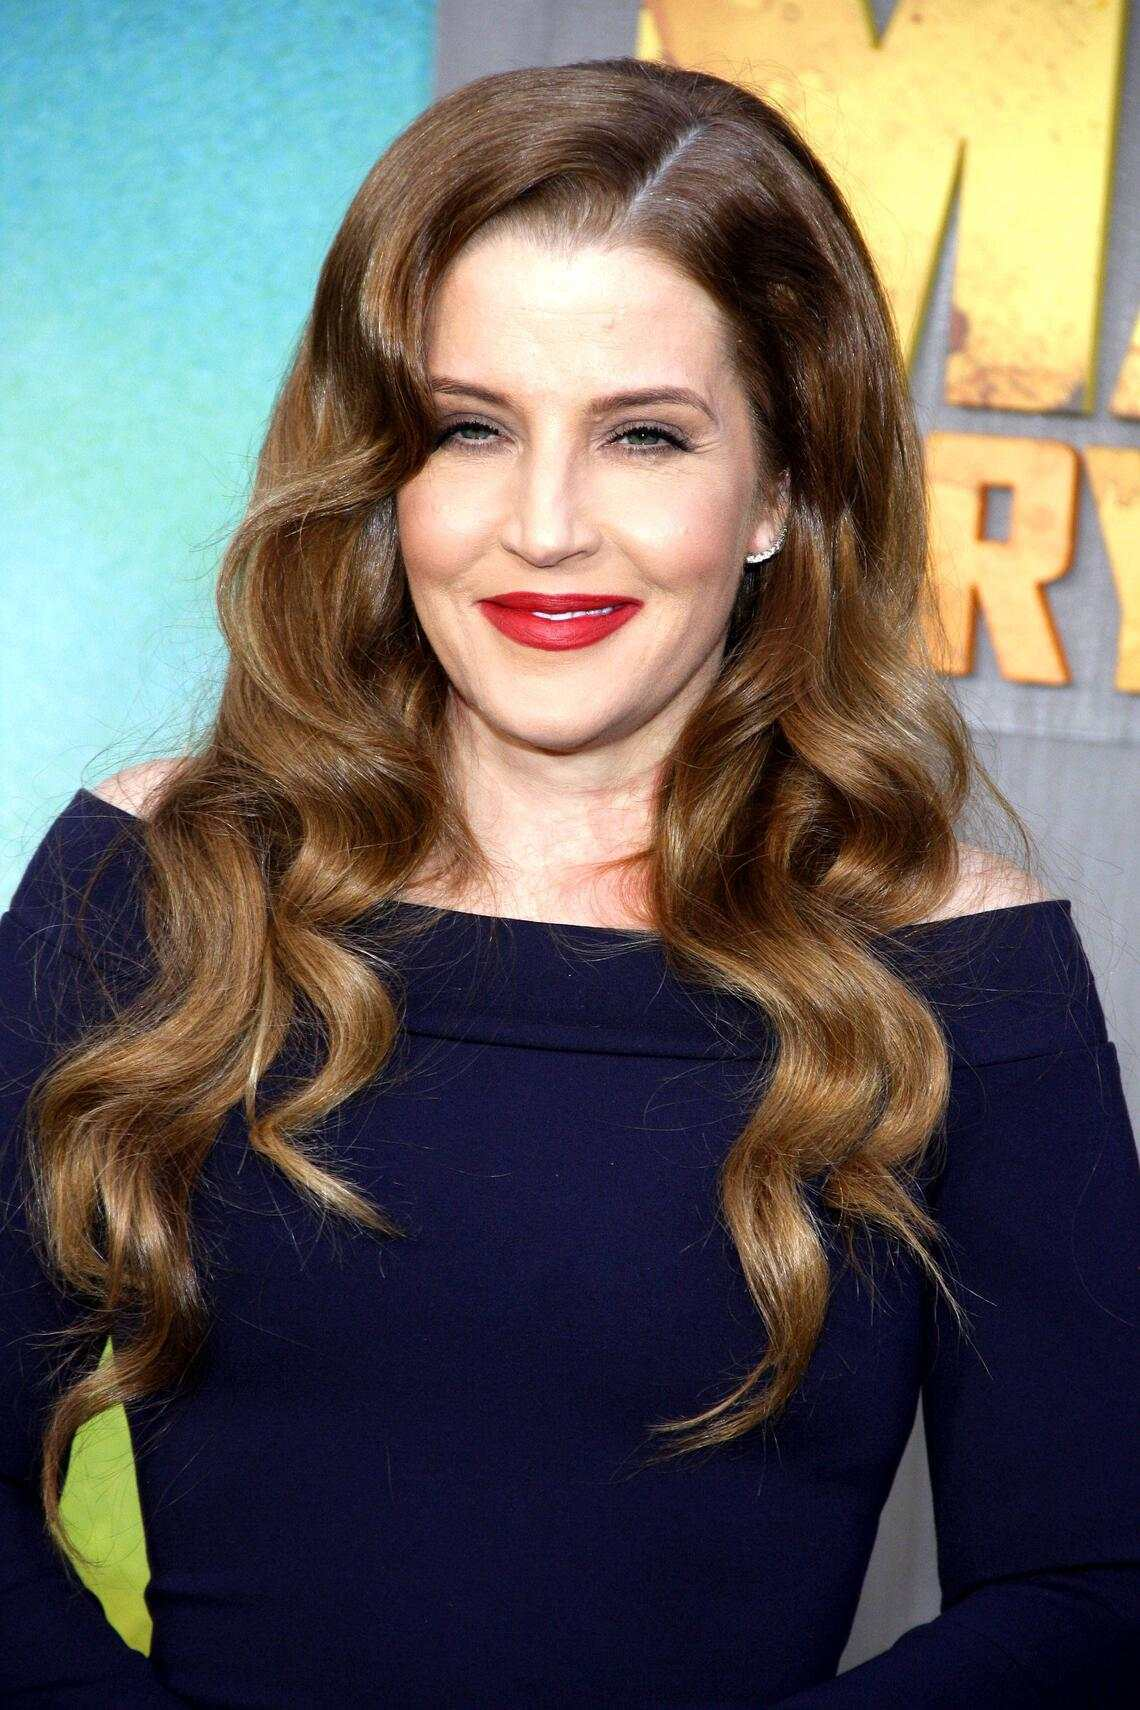 Lisa Marie Presley bei der Mad Max: Fury Road Kino Premiere am 7.05.2015 in Hollywood, Los Angeles Mad Max: Fury Road Kinopremiere in Los Angeles, 2015 PUBLICATIONxINxGERxSUIxAUTxONLY